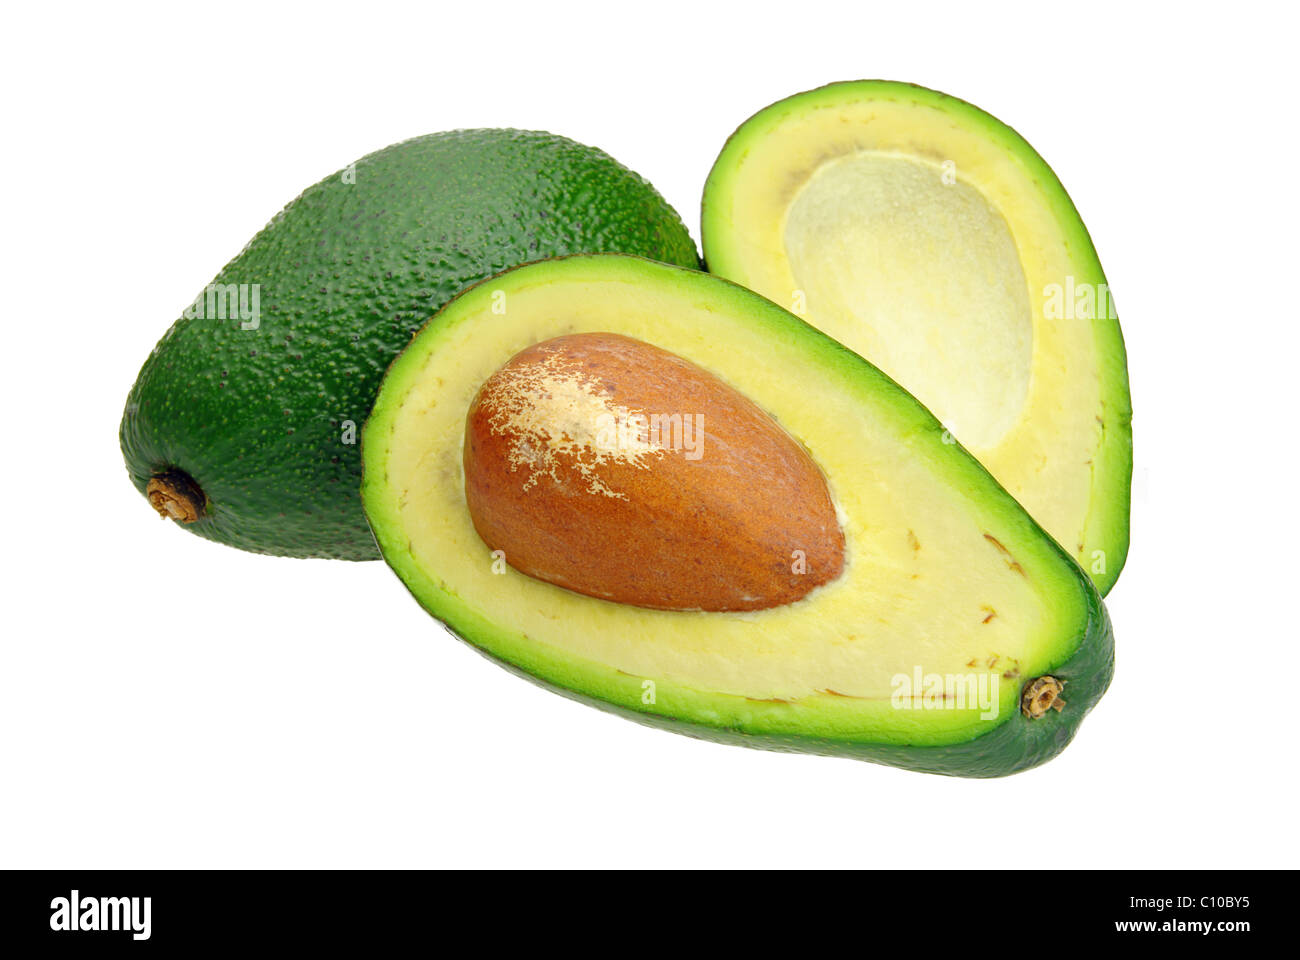 Avocado 07 - Stock Image